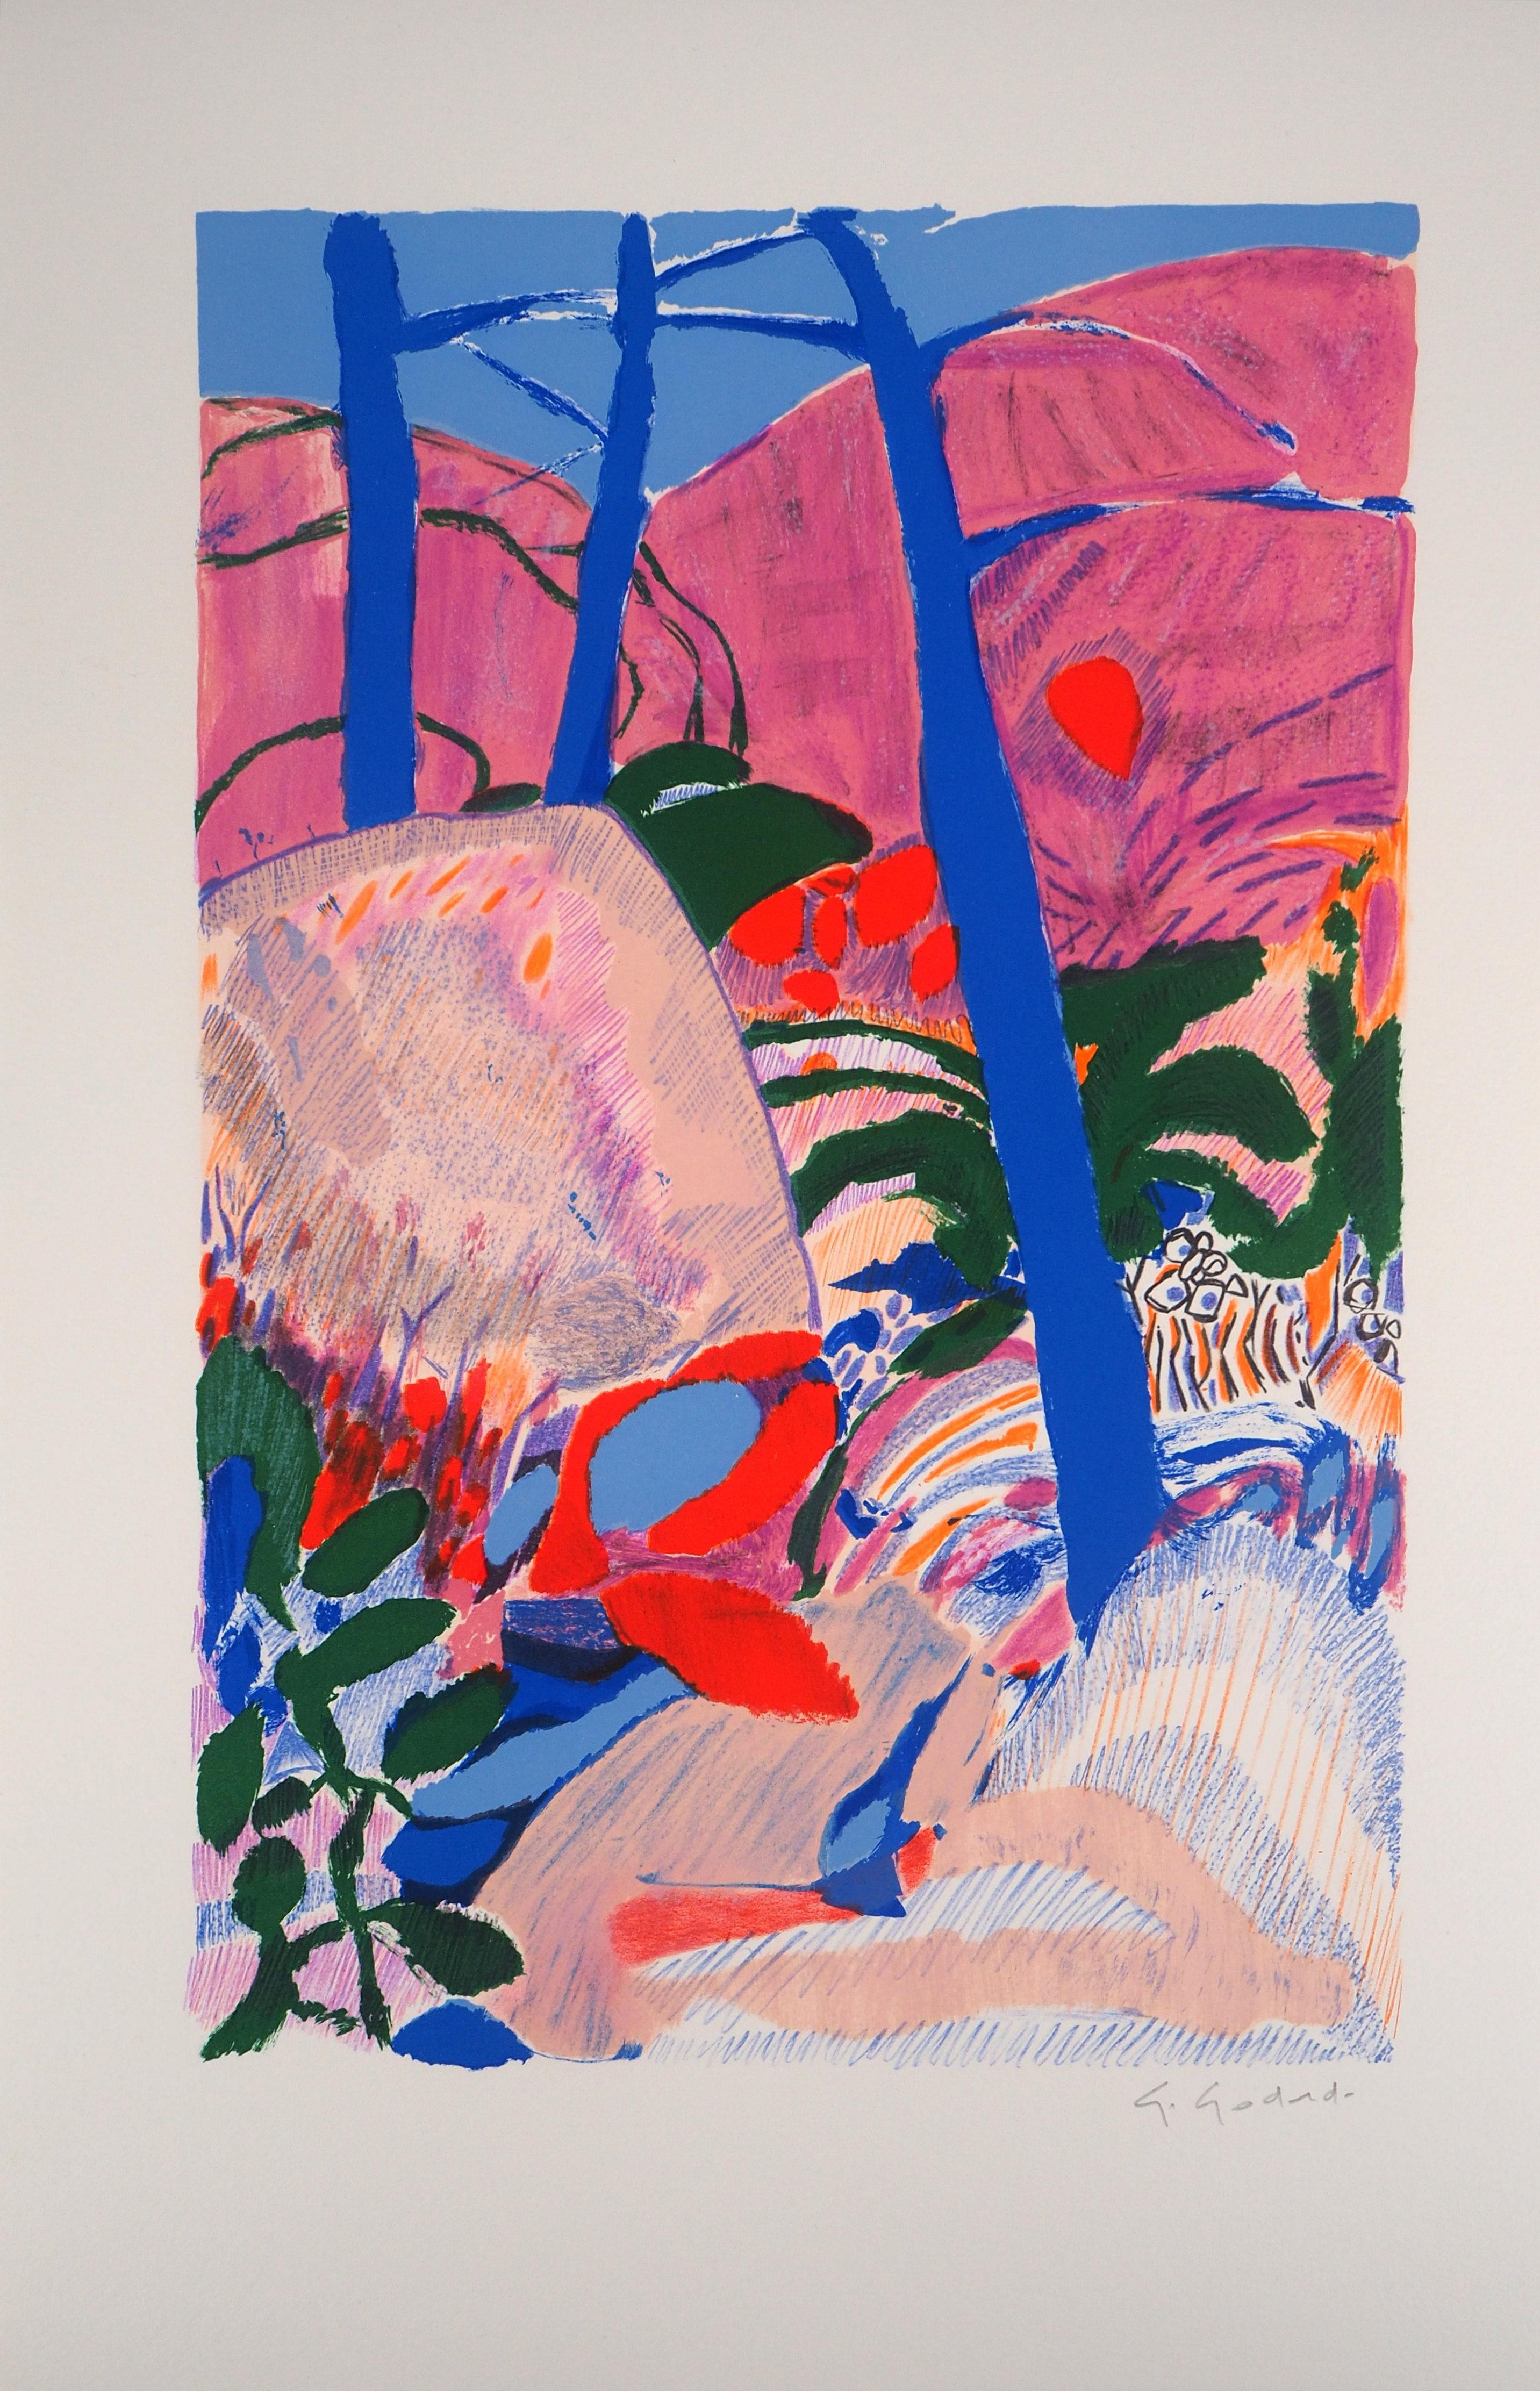 The Forest - Original Lithograph, Handsigned